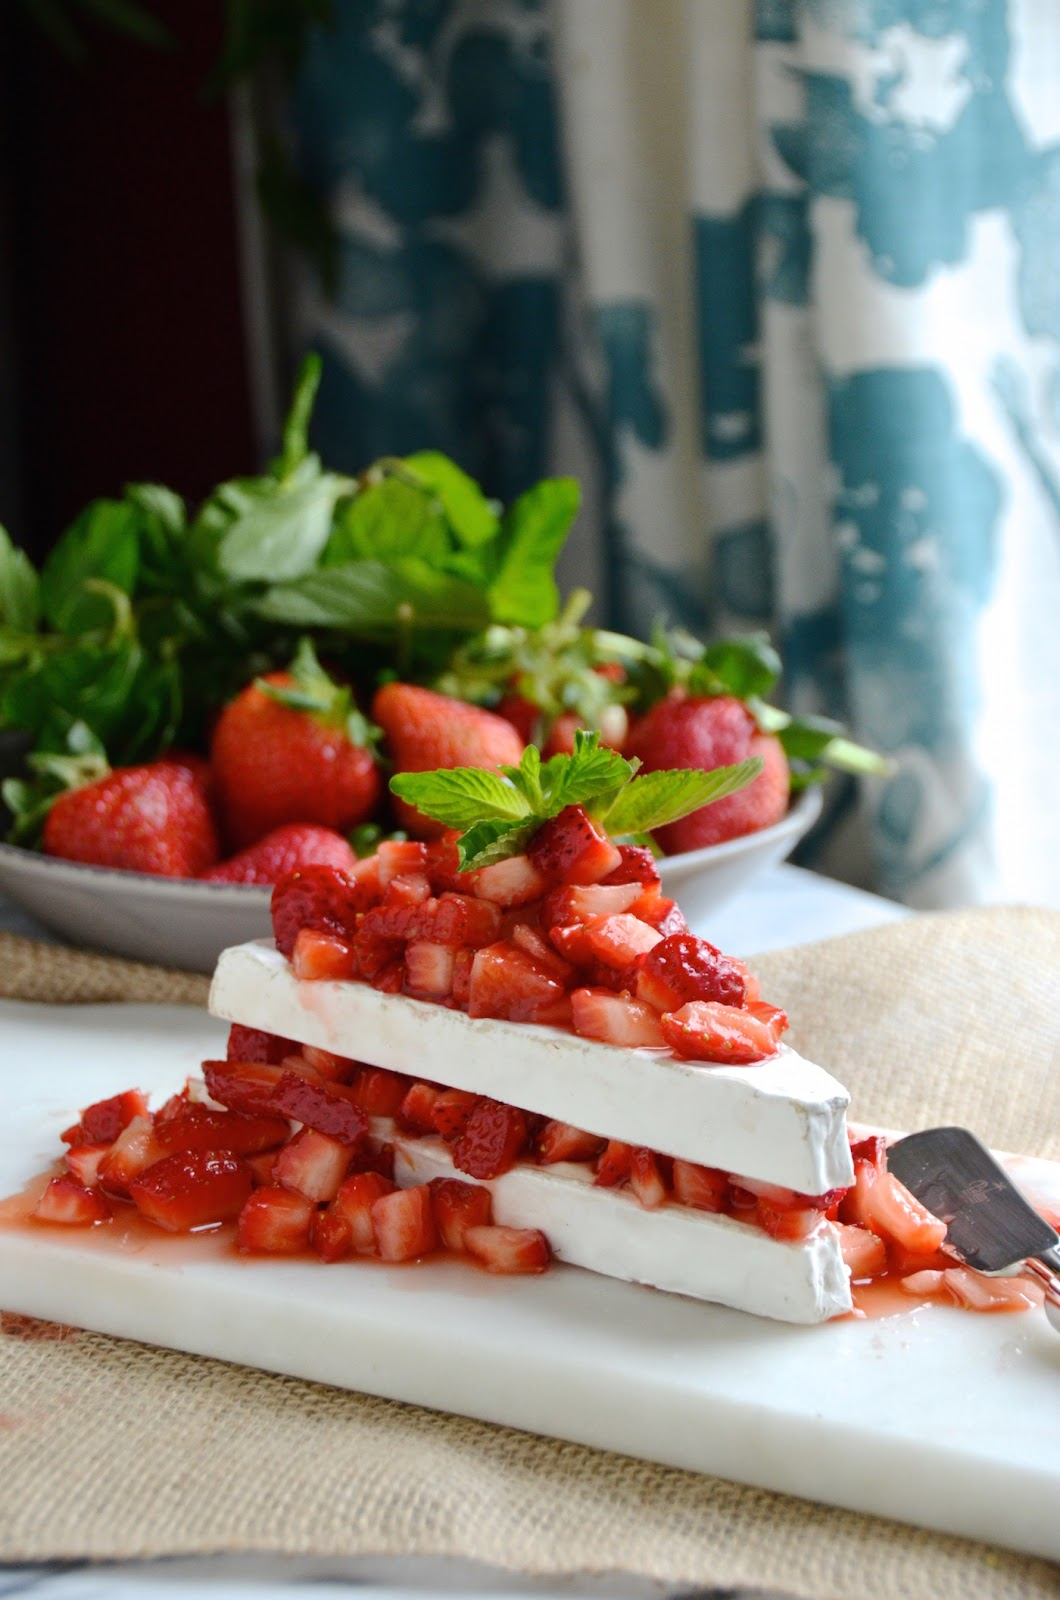 Winonas restaurant bakery category winonas blog i call it strawberry shortcake brie straw brie shortcake for fun and its a play on a classic strawberry shortcake dessert swapping in brie cheese for forumfinder Choice Image